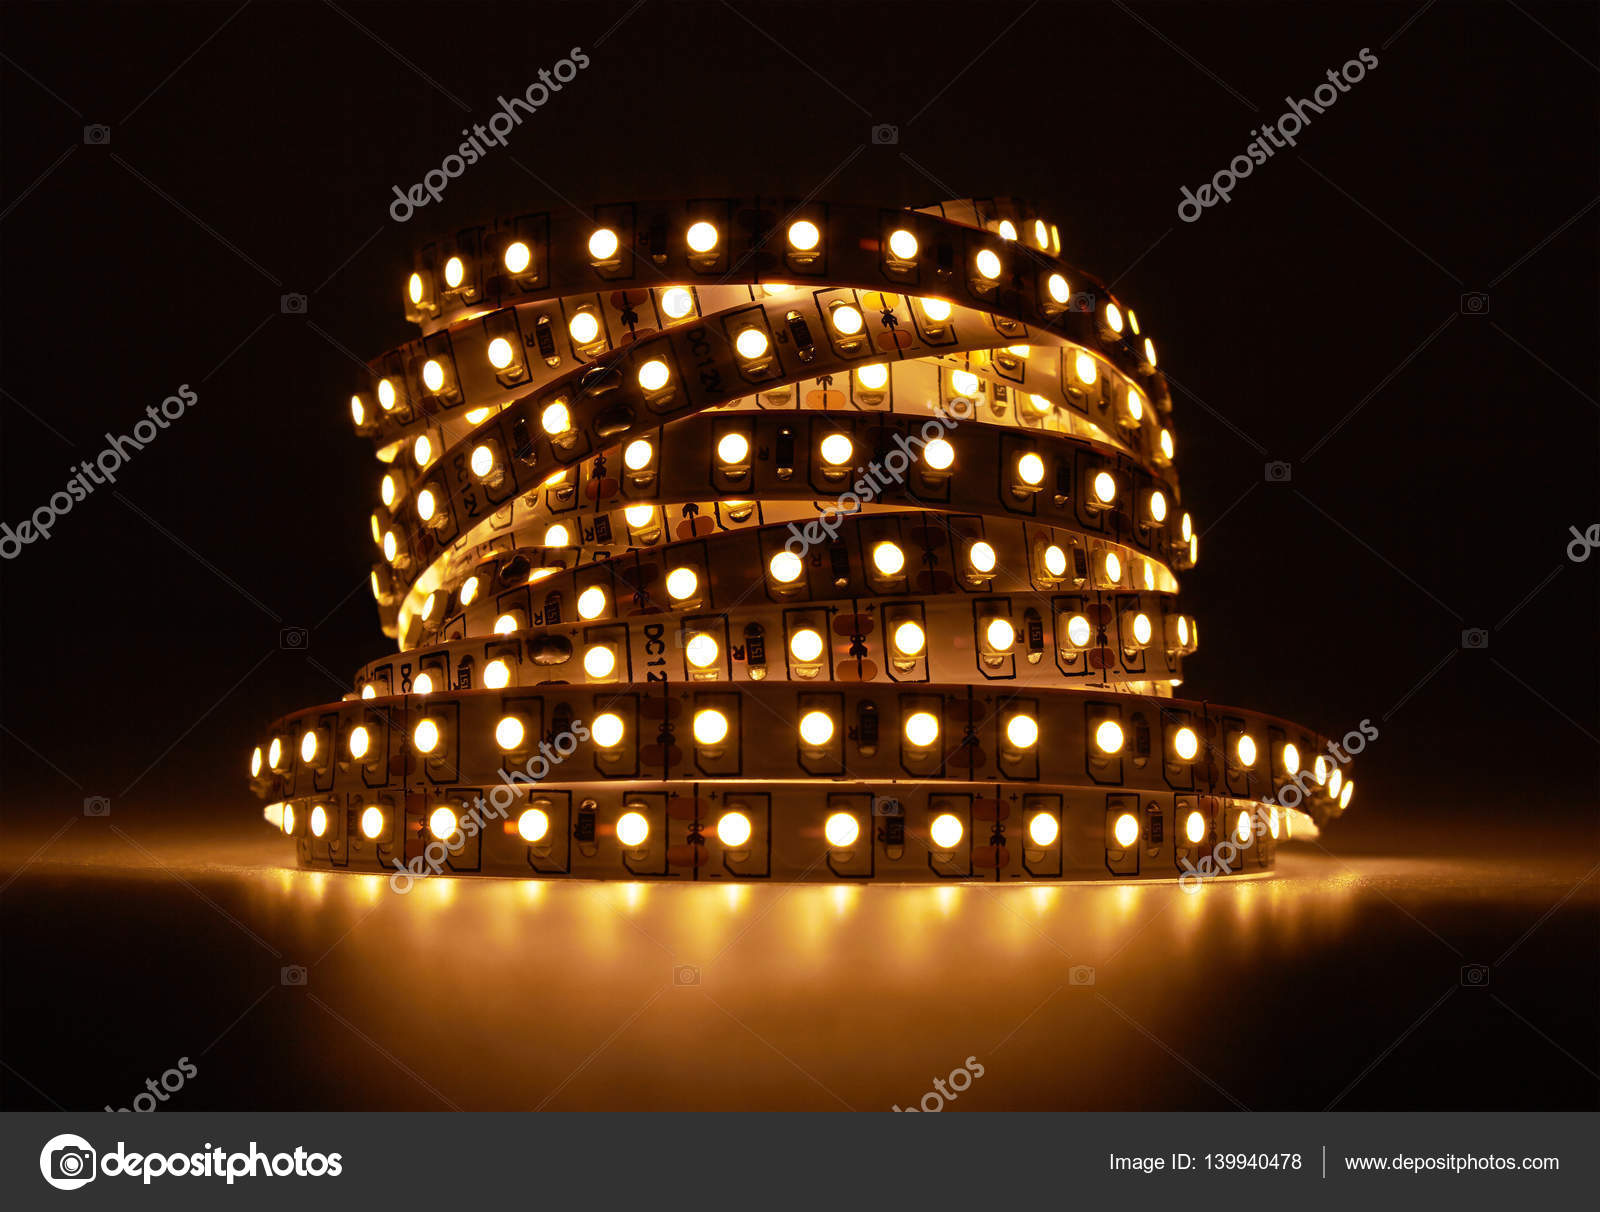 Diode strip led lights tape stock photo krasyuk 139940478 diode strip led lights tape close up photo by krasyuk aloadofball Image collections